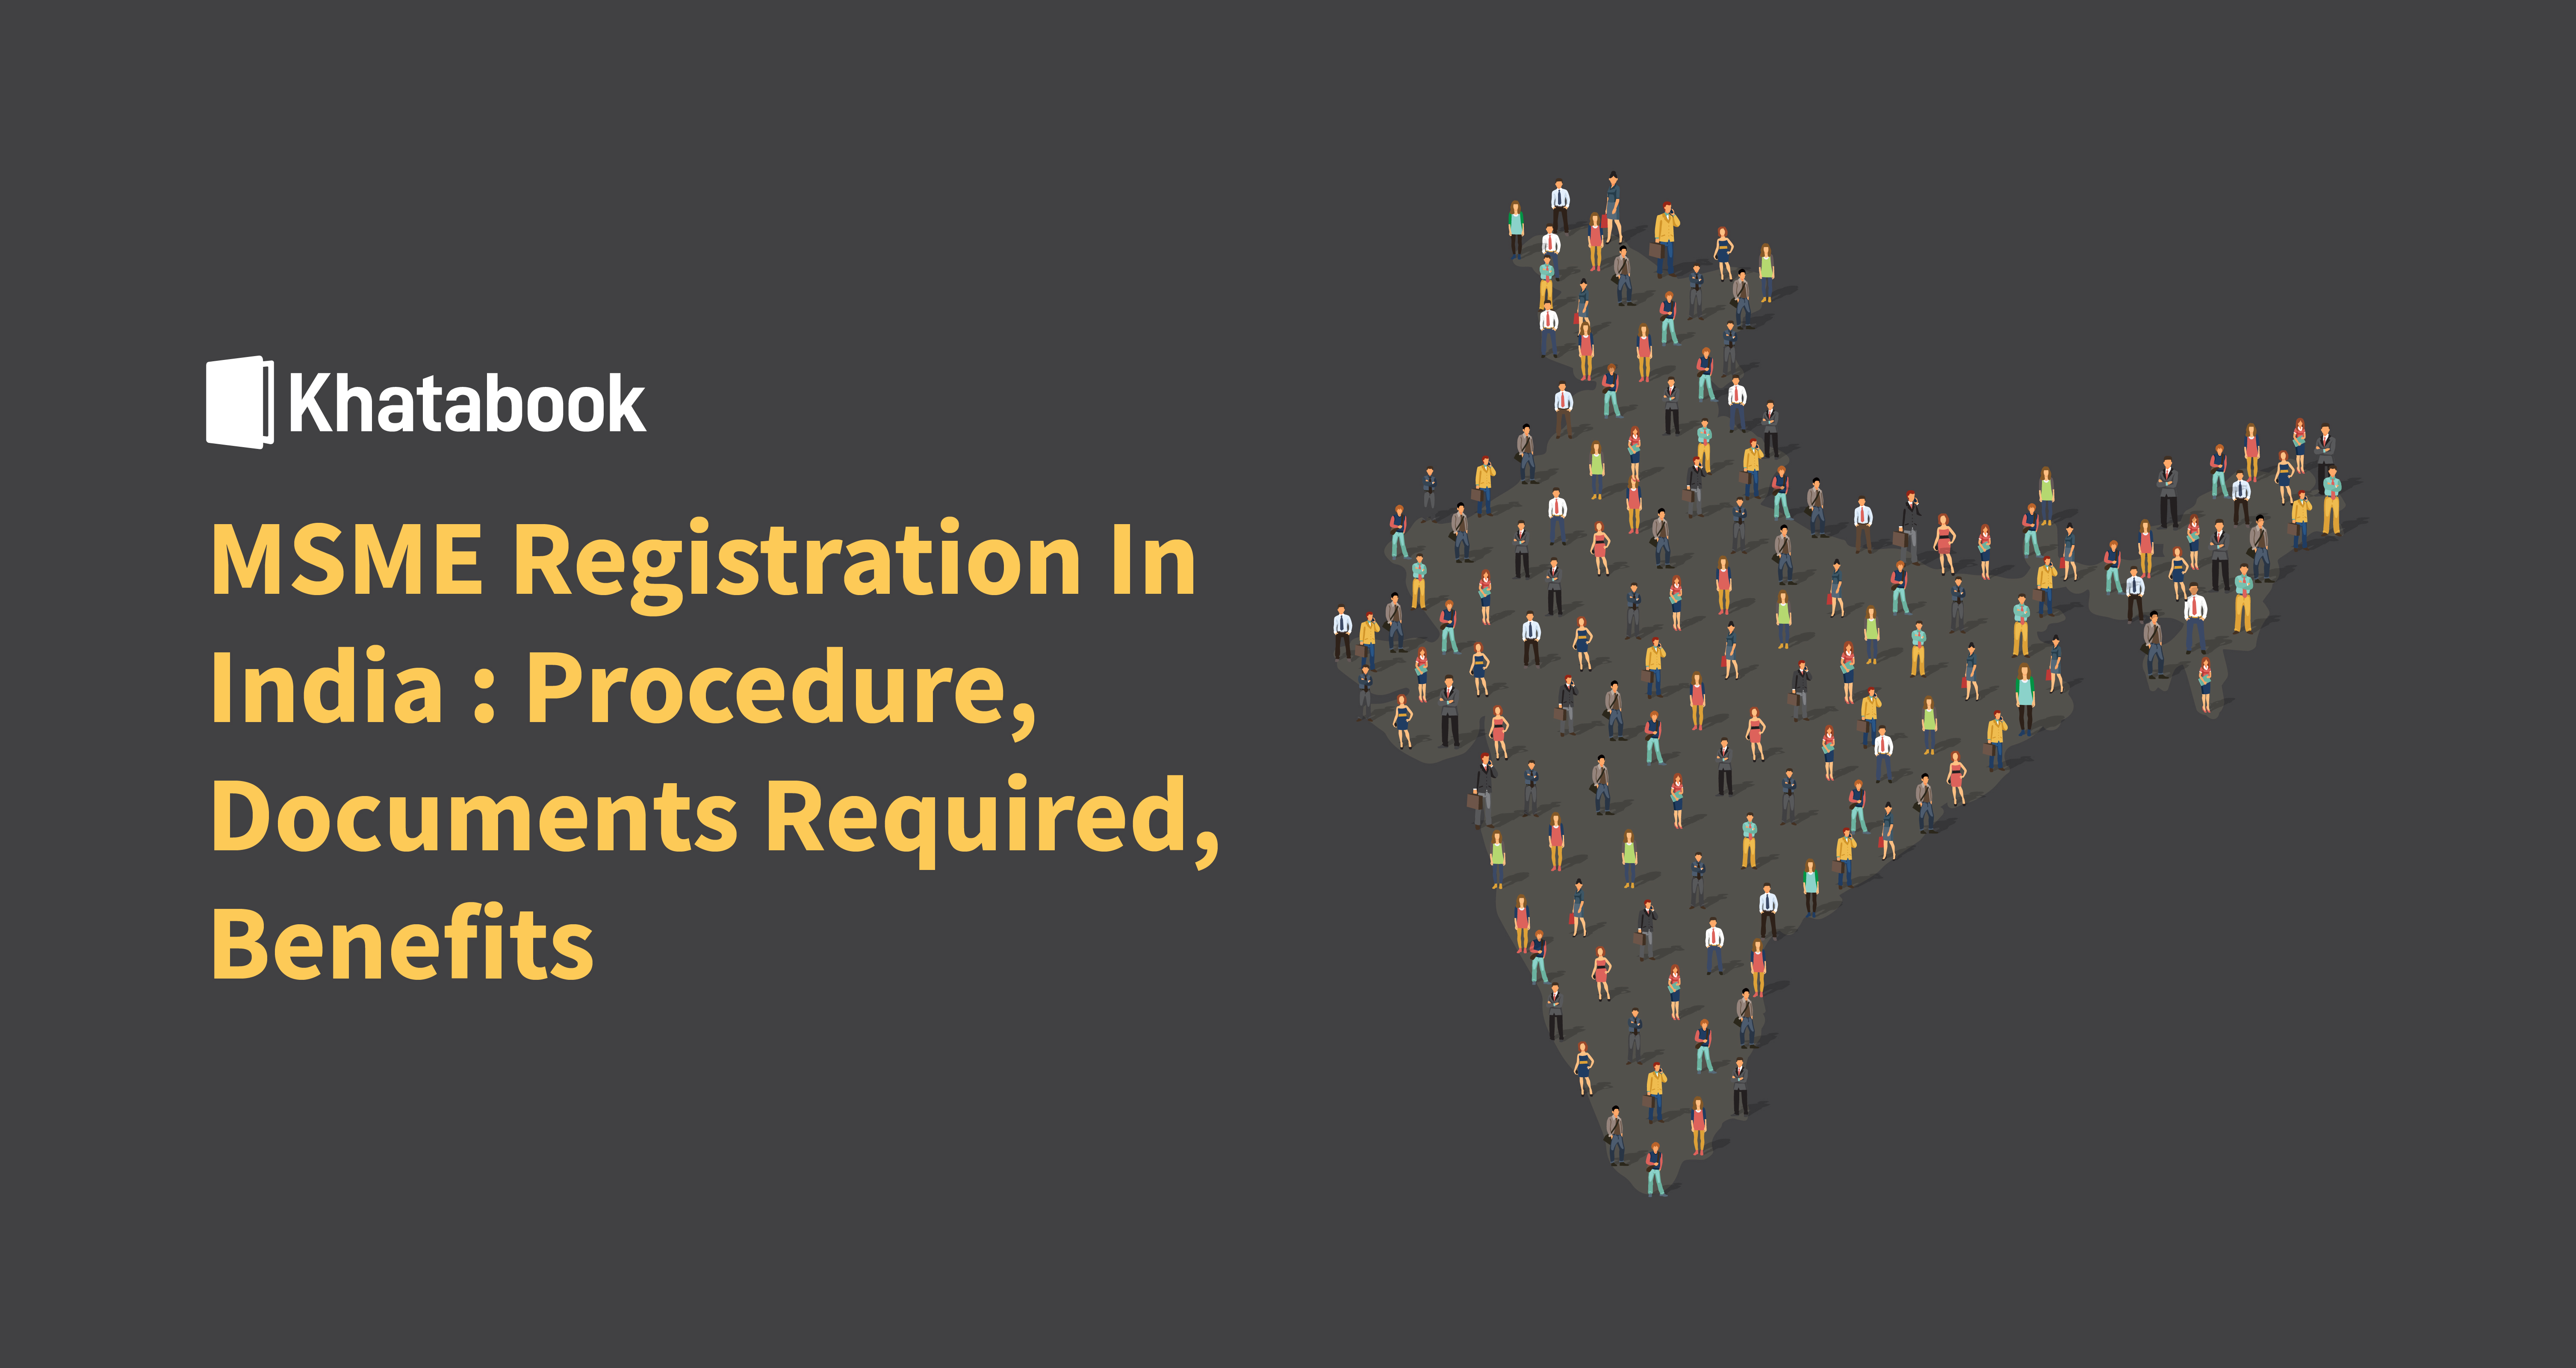 MSME Registration In India: Procedure, Documents Required, Benefits